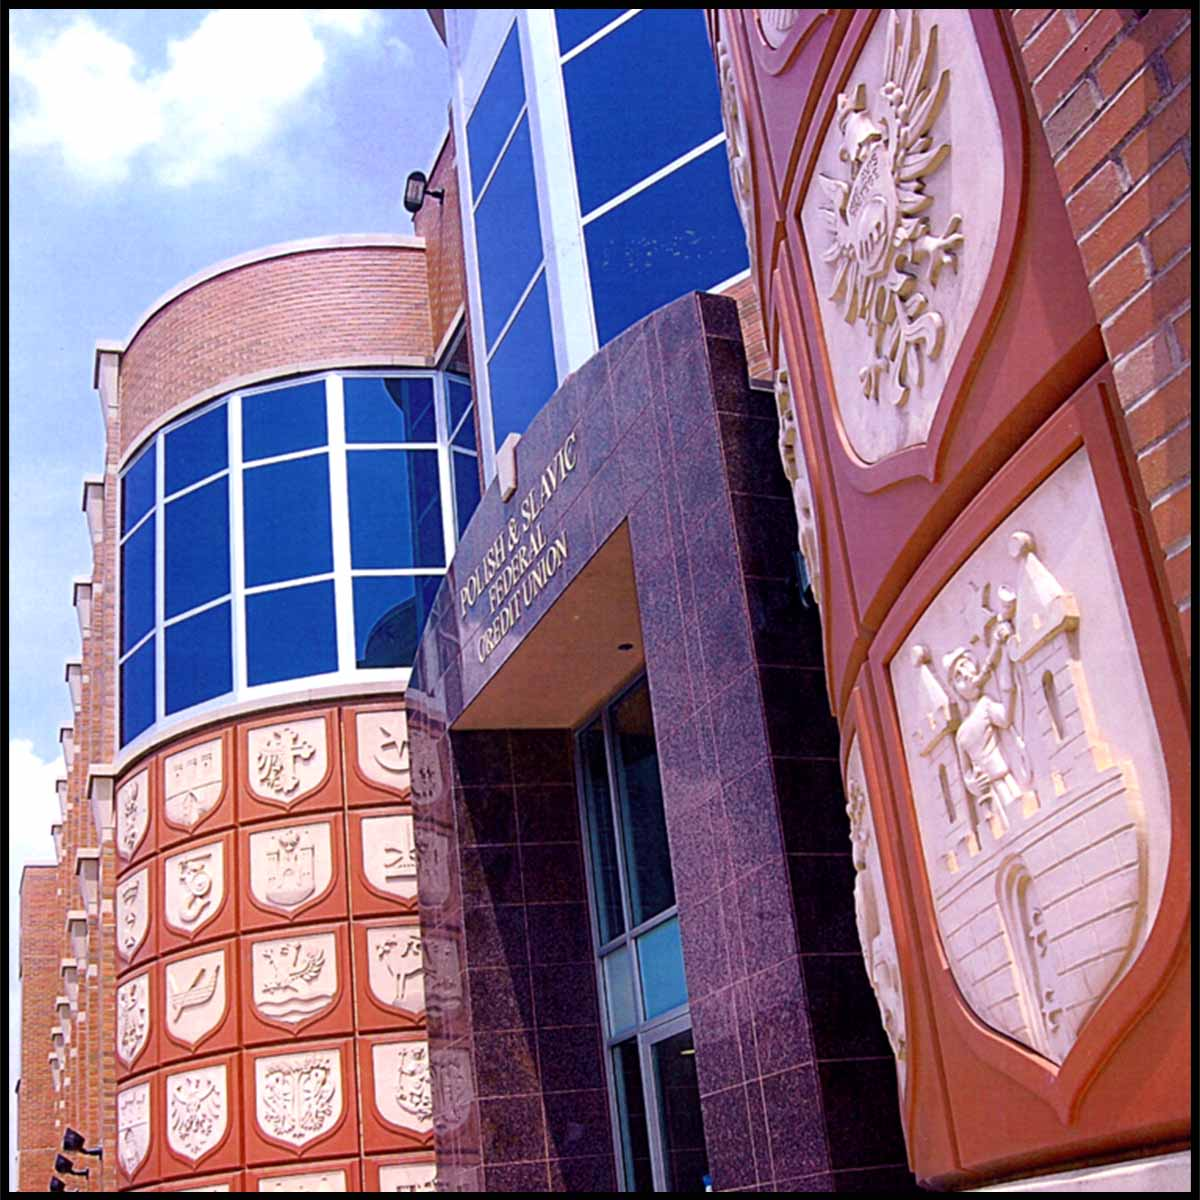 photo of entrance of stone and brick building with rounded tower-like elements and a series of white shields sculpted in relief set in brick-colored squares